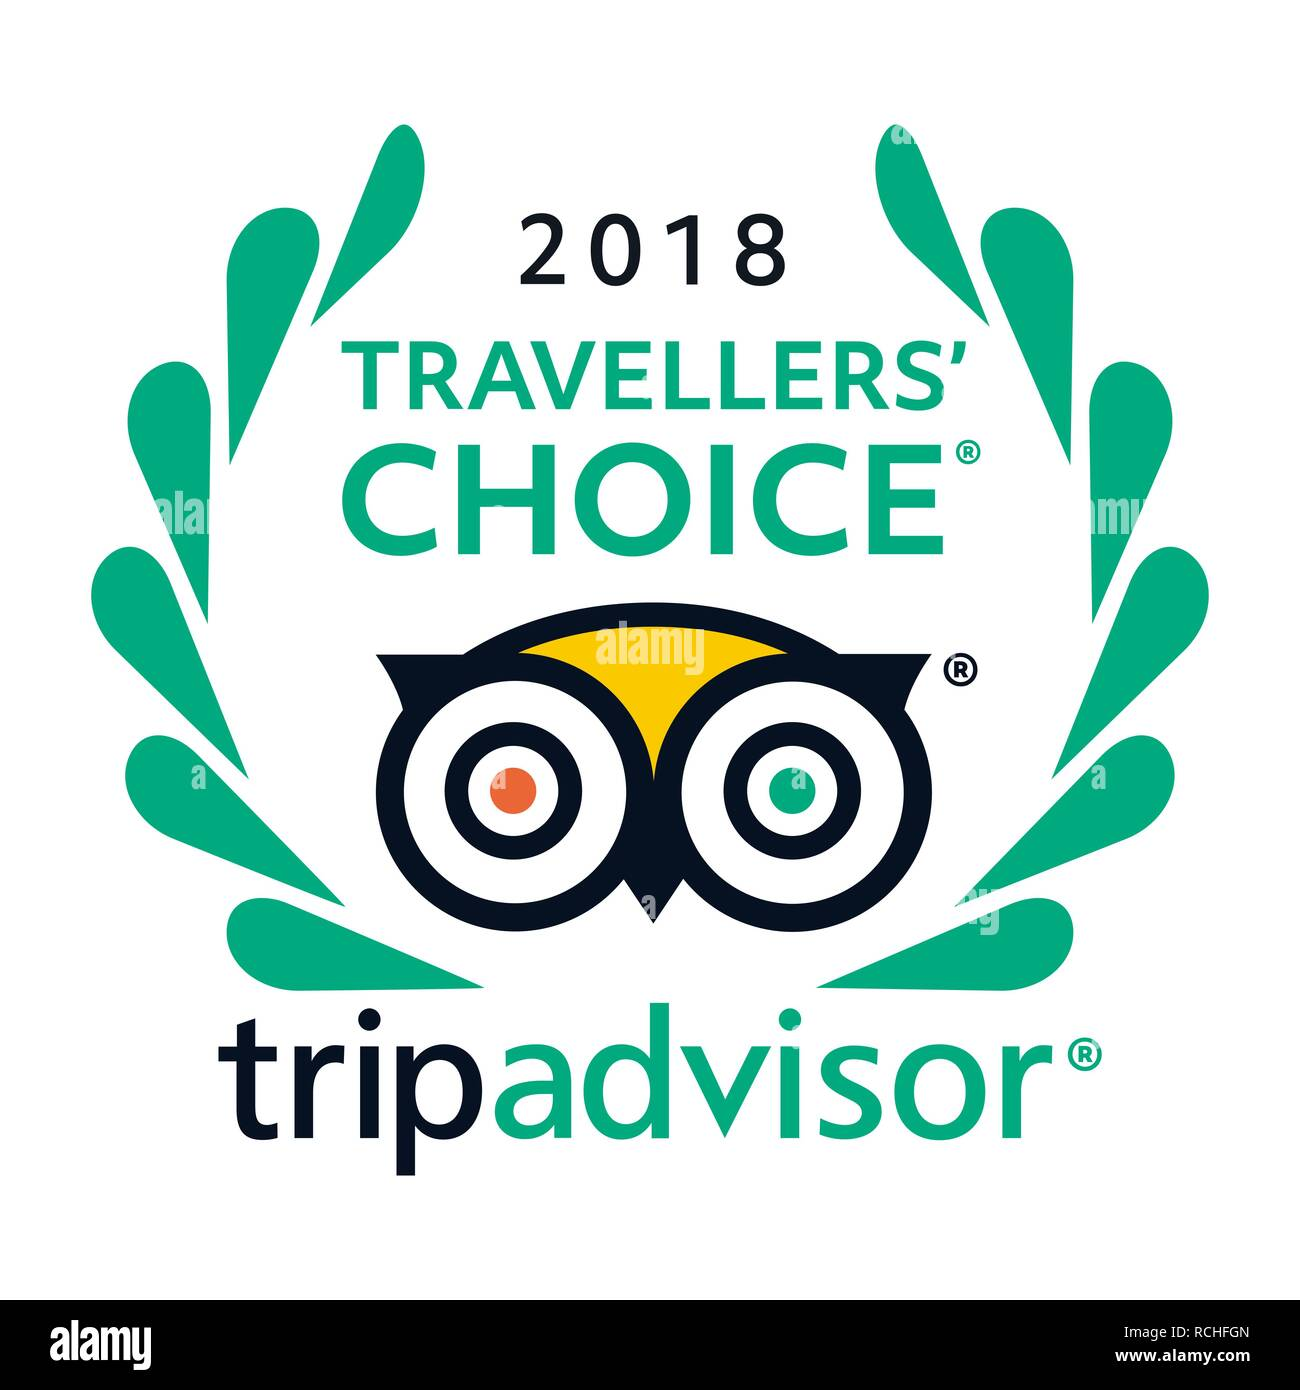 2018 Travellers Choice Tripadvisor logo icon vector - popular service with rating of hotels and attractions for travel. - Stock Vector